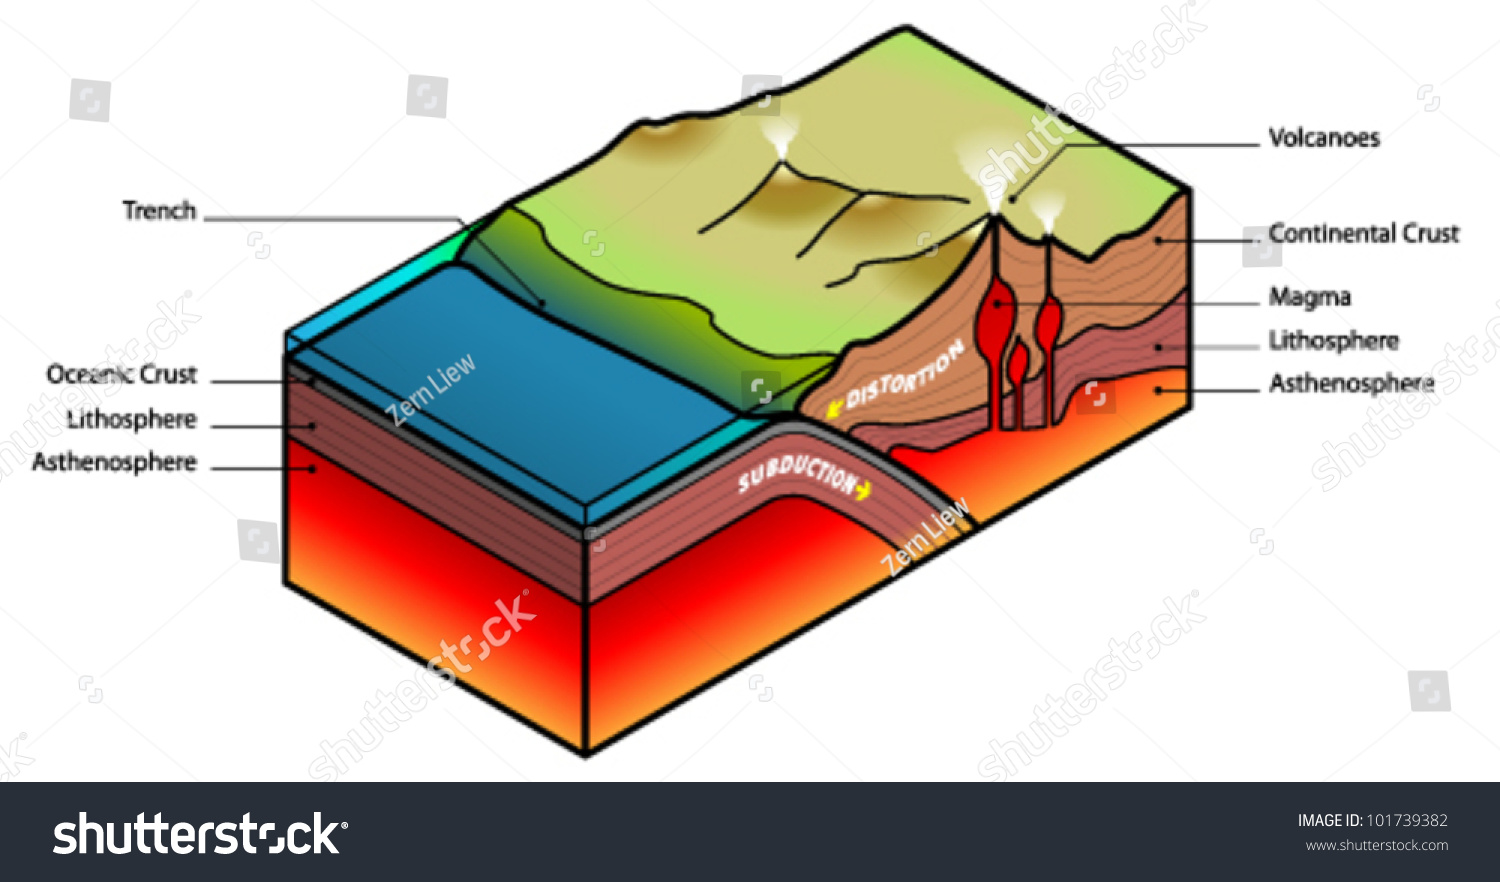 plate subduction diagram stock vector illustration 101739382  : subduction diagram - findchart.co